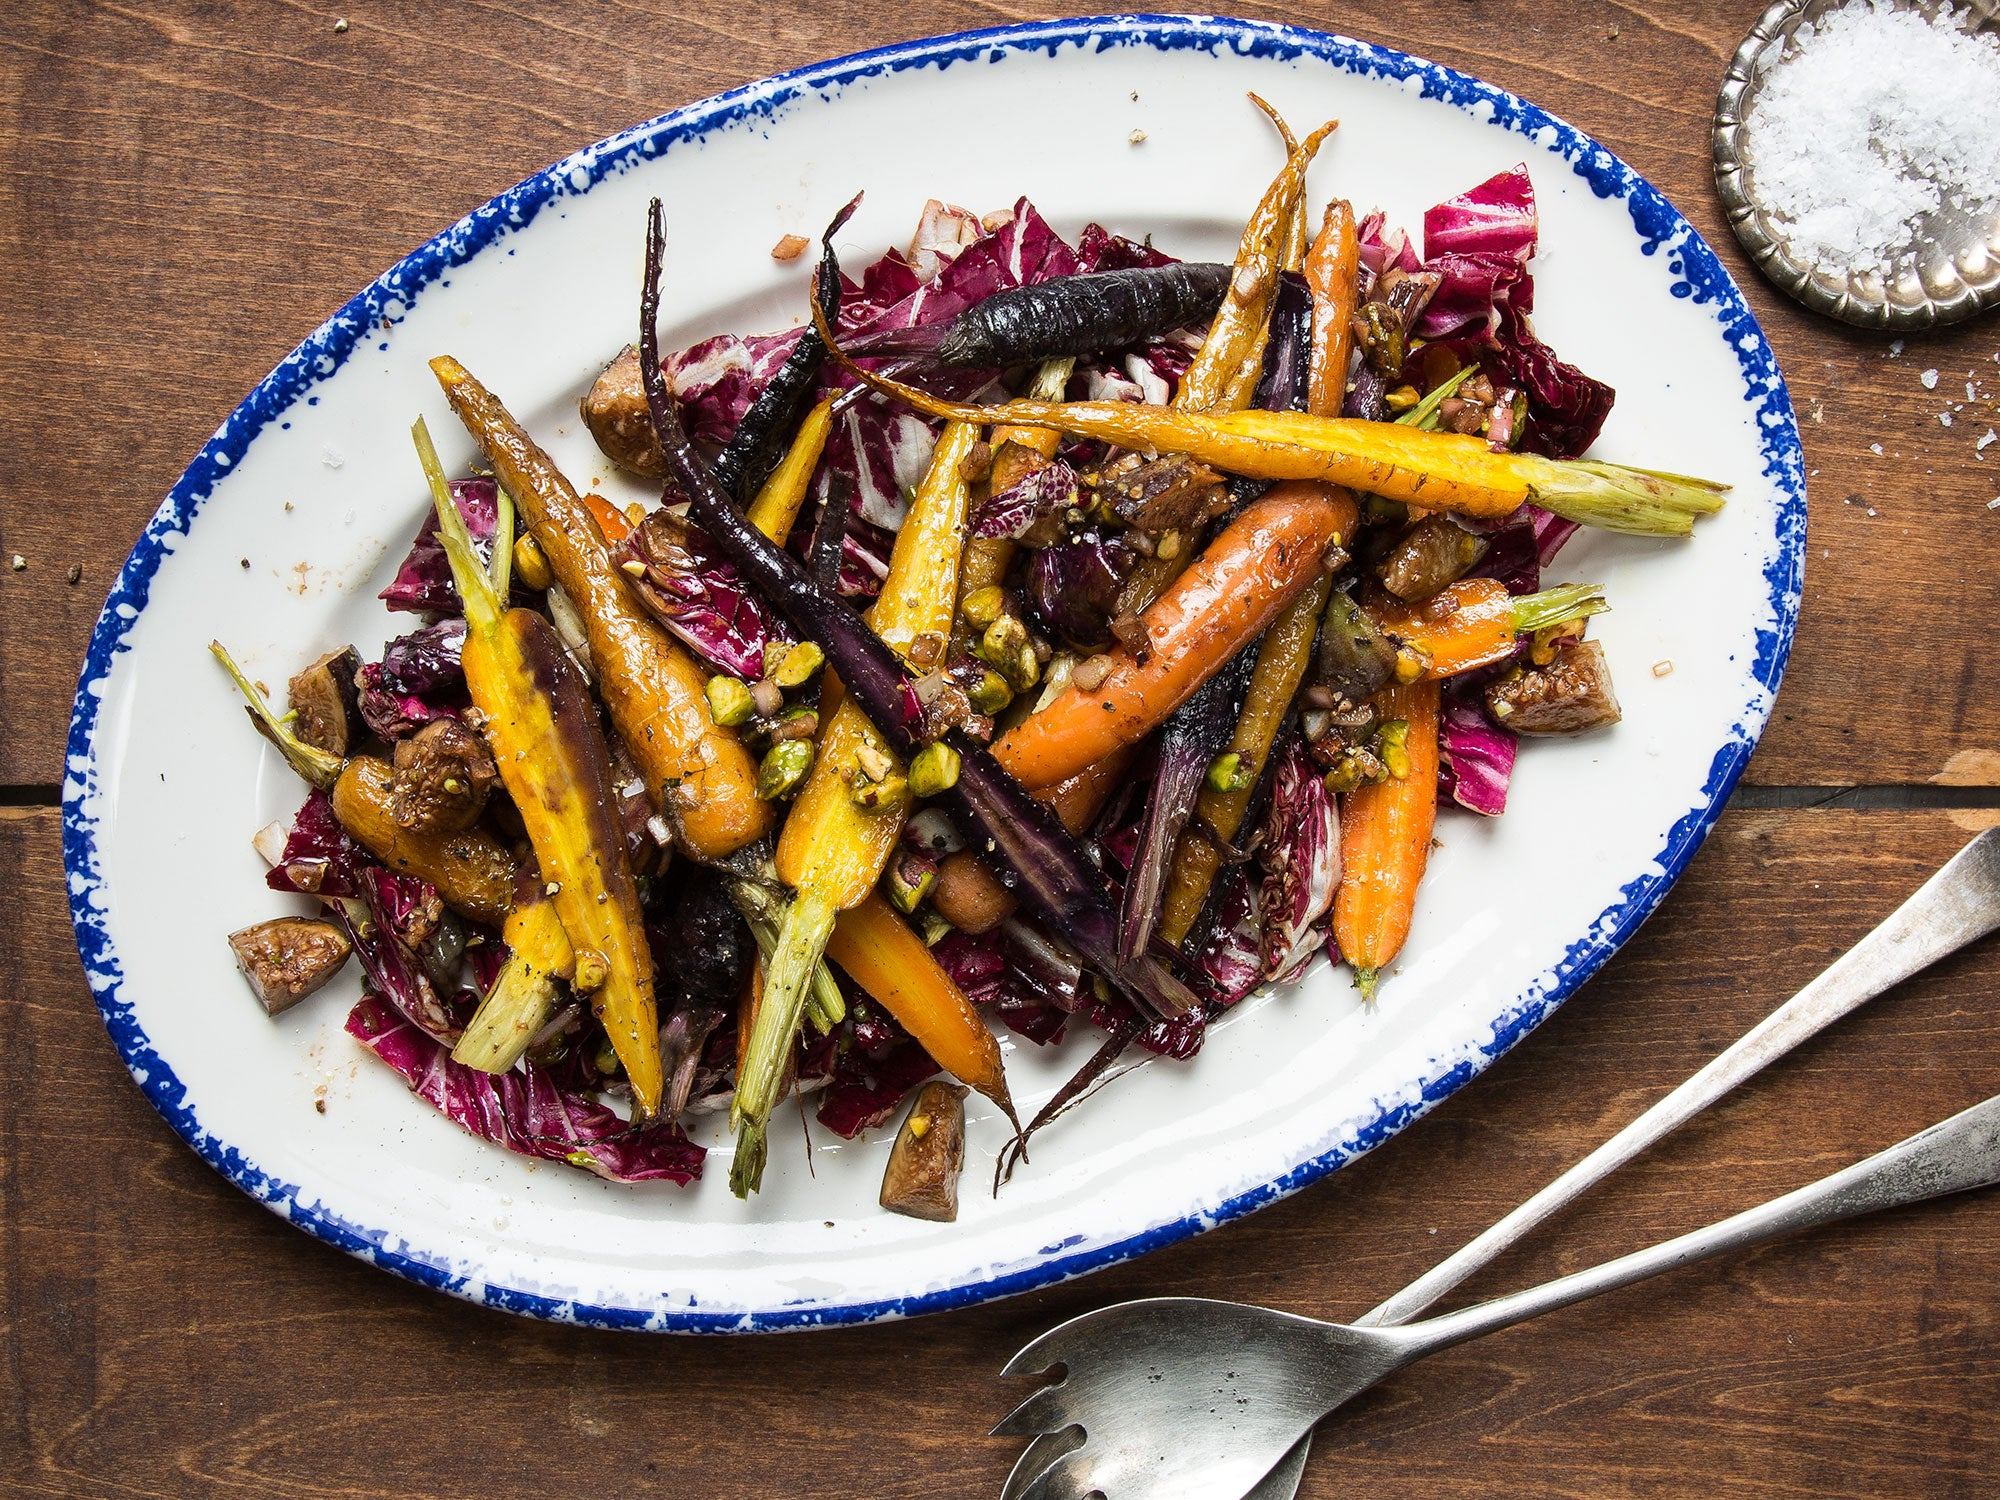 Carrot and Pistachio Salad